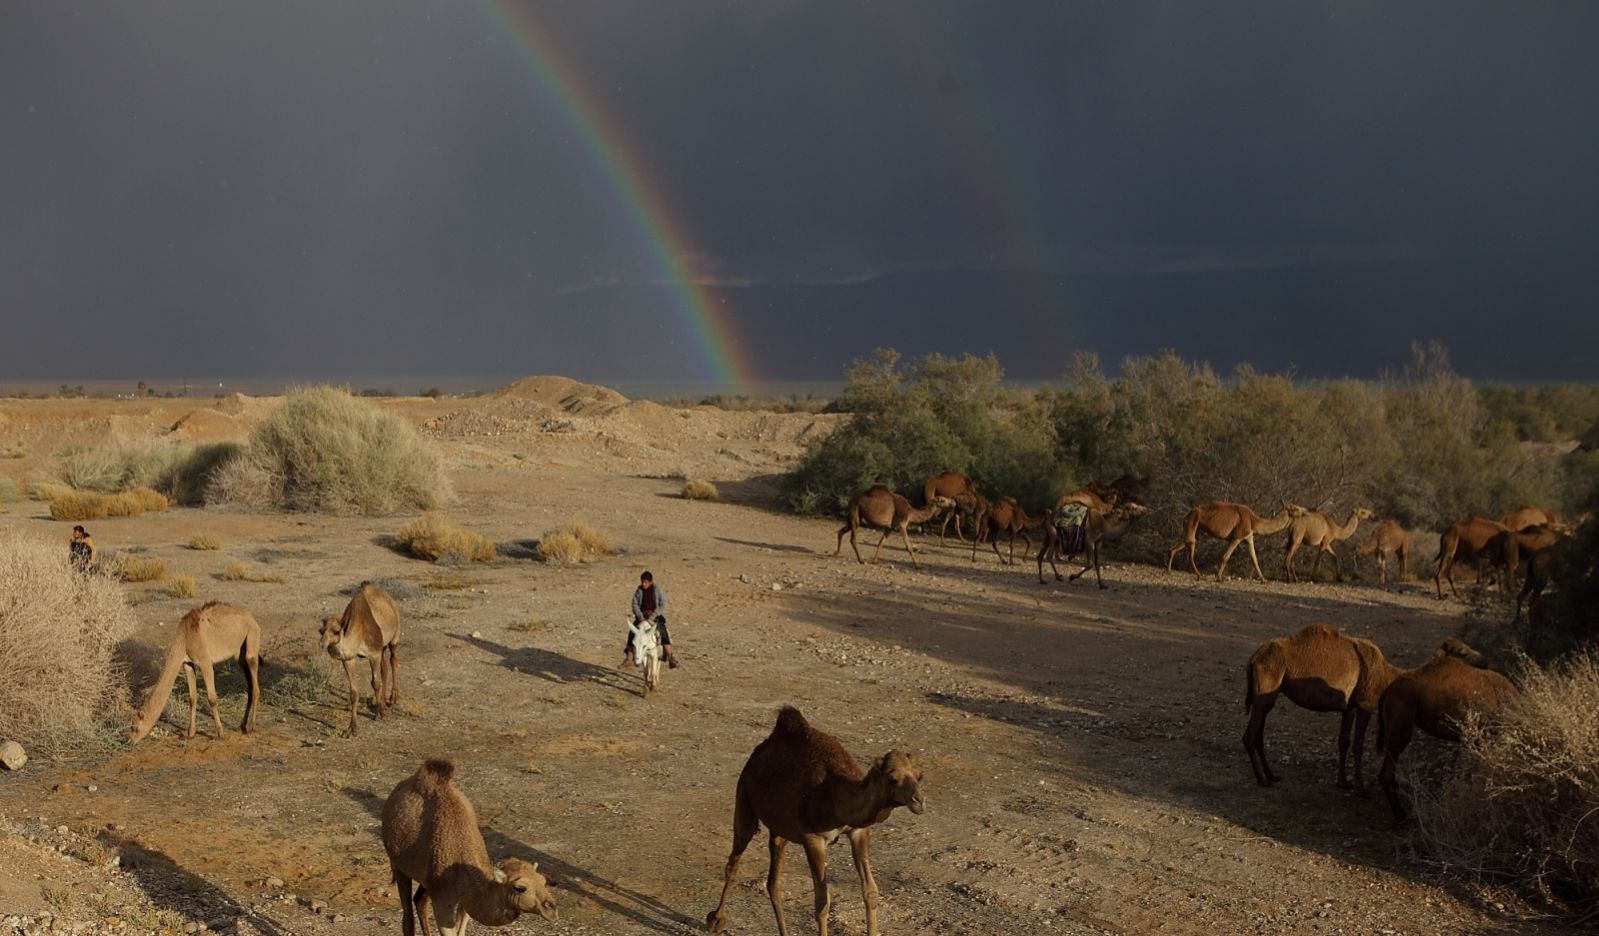 Camels wander near the Dead Sea under a rainbow sky. Photo by Yaakov Naumi/FLASH90